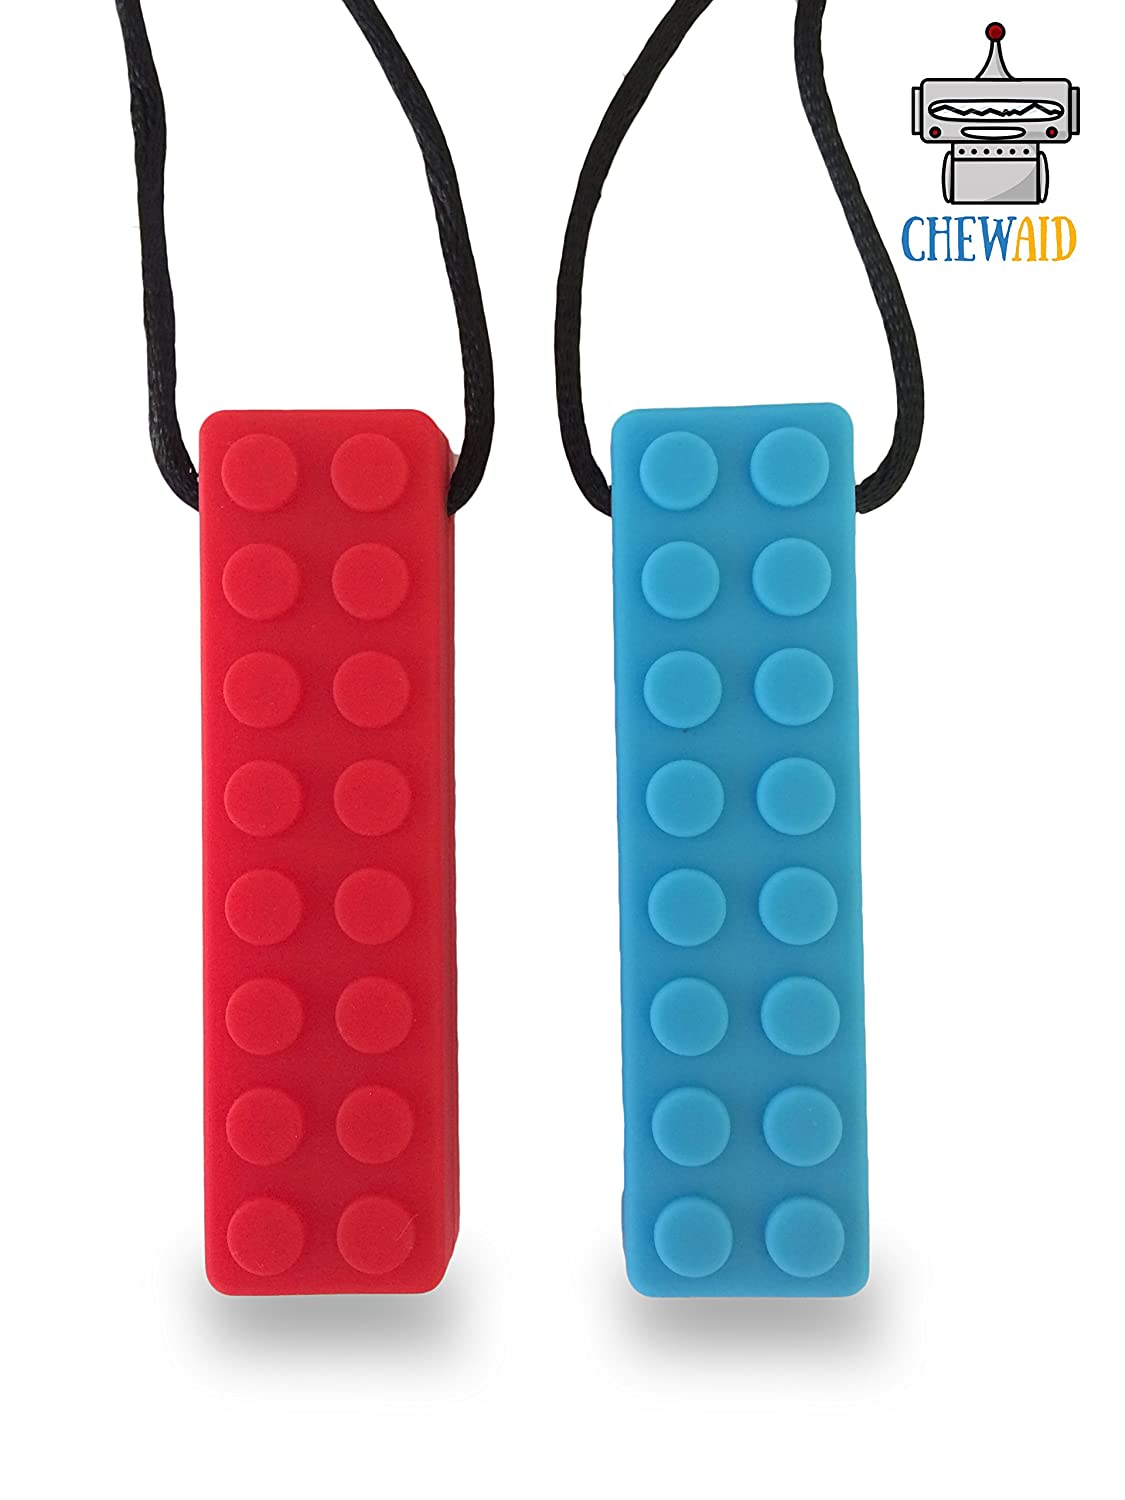 Chew Pendant Training and Development Fidget Toy Chew Necklace for Teething Babies,Sensory,Oral Motor, Anxiety, Autism (Red and Blue) Pack of 2 ADHD (RED BLUE) JCM